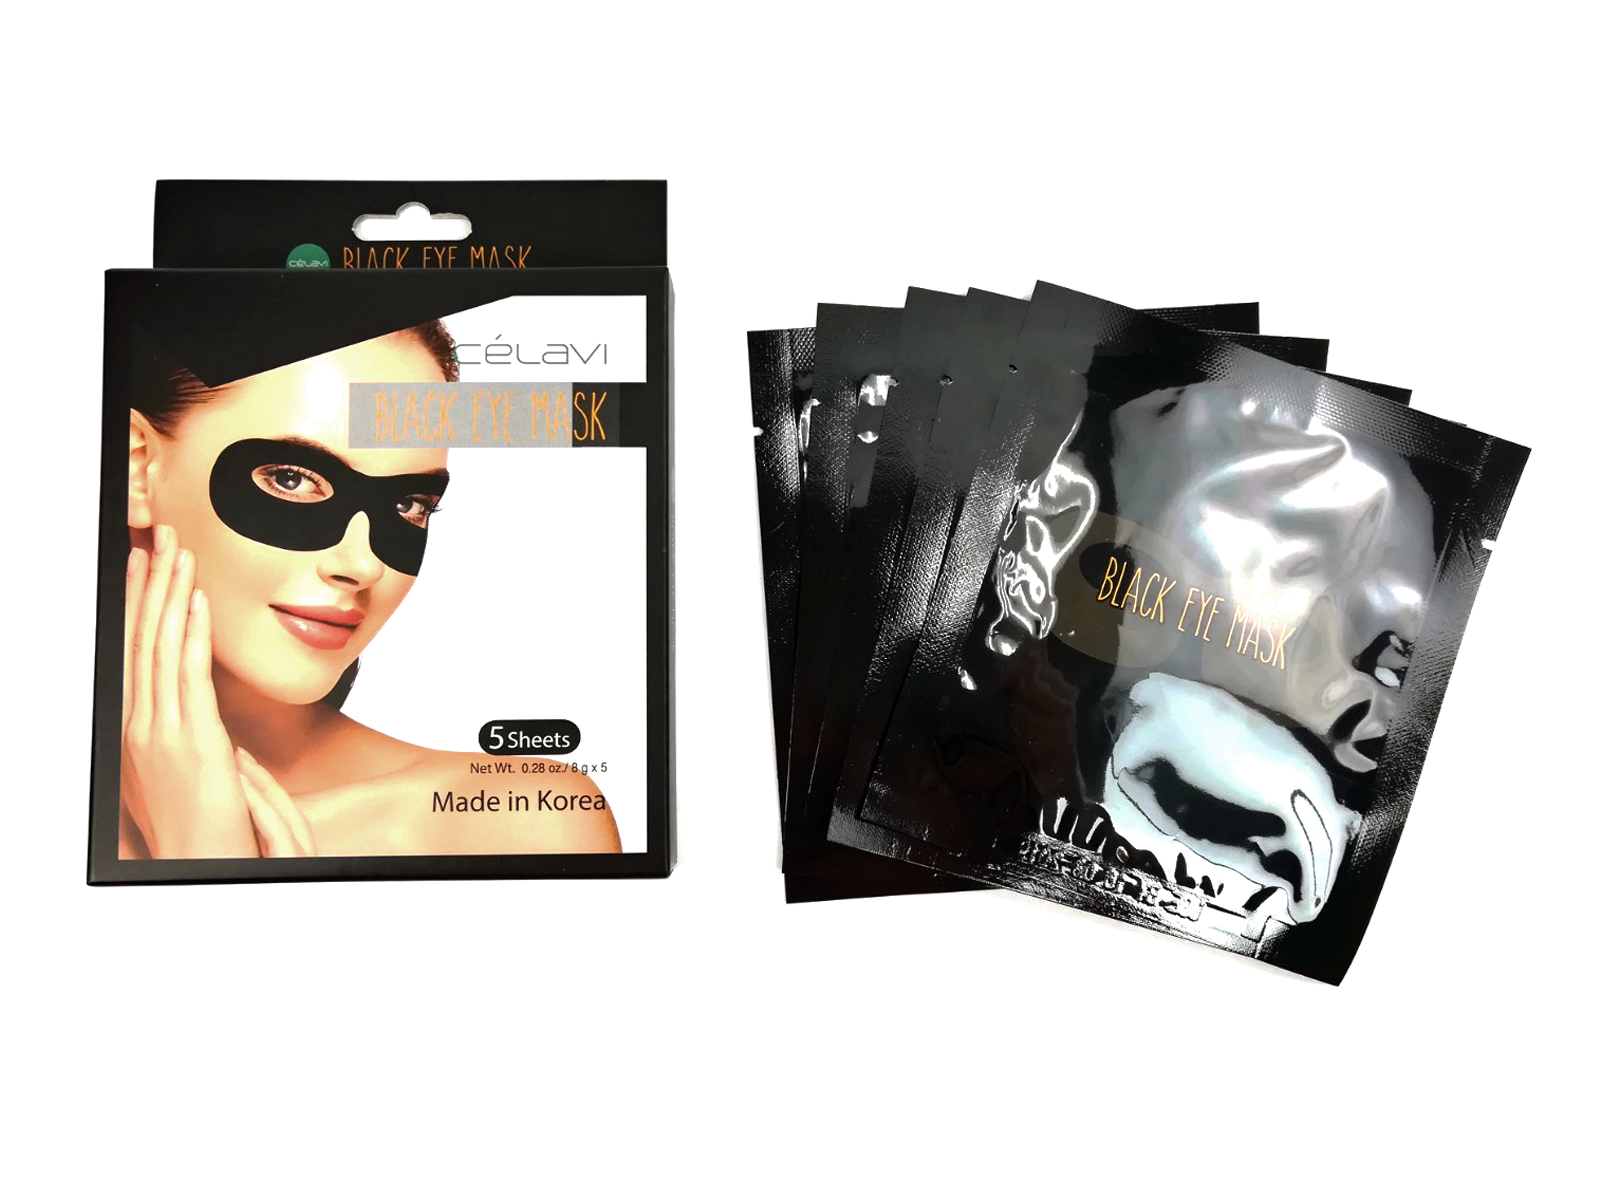 Celavi Moisturizing & Regenerating Black Eye Mask Pack - 5 Sheets (Natural Fruit & Oil Extracts)